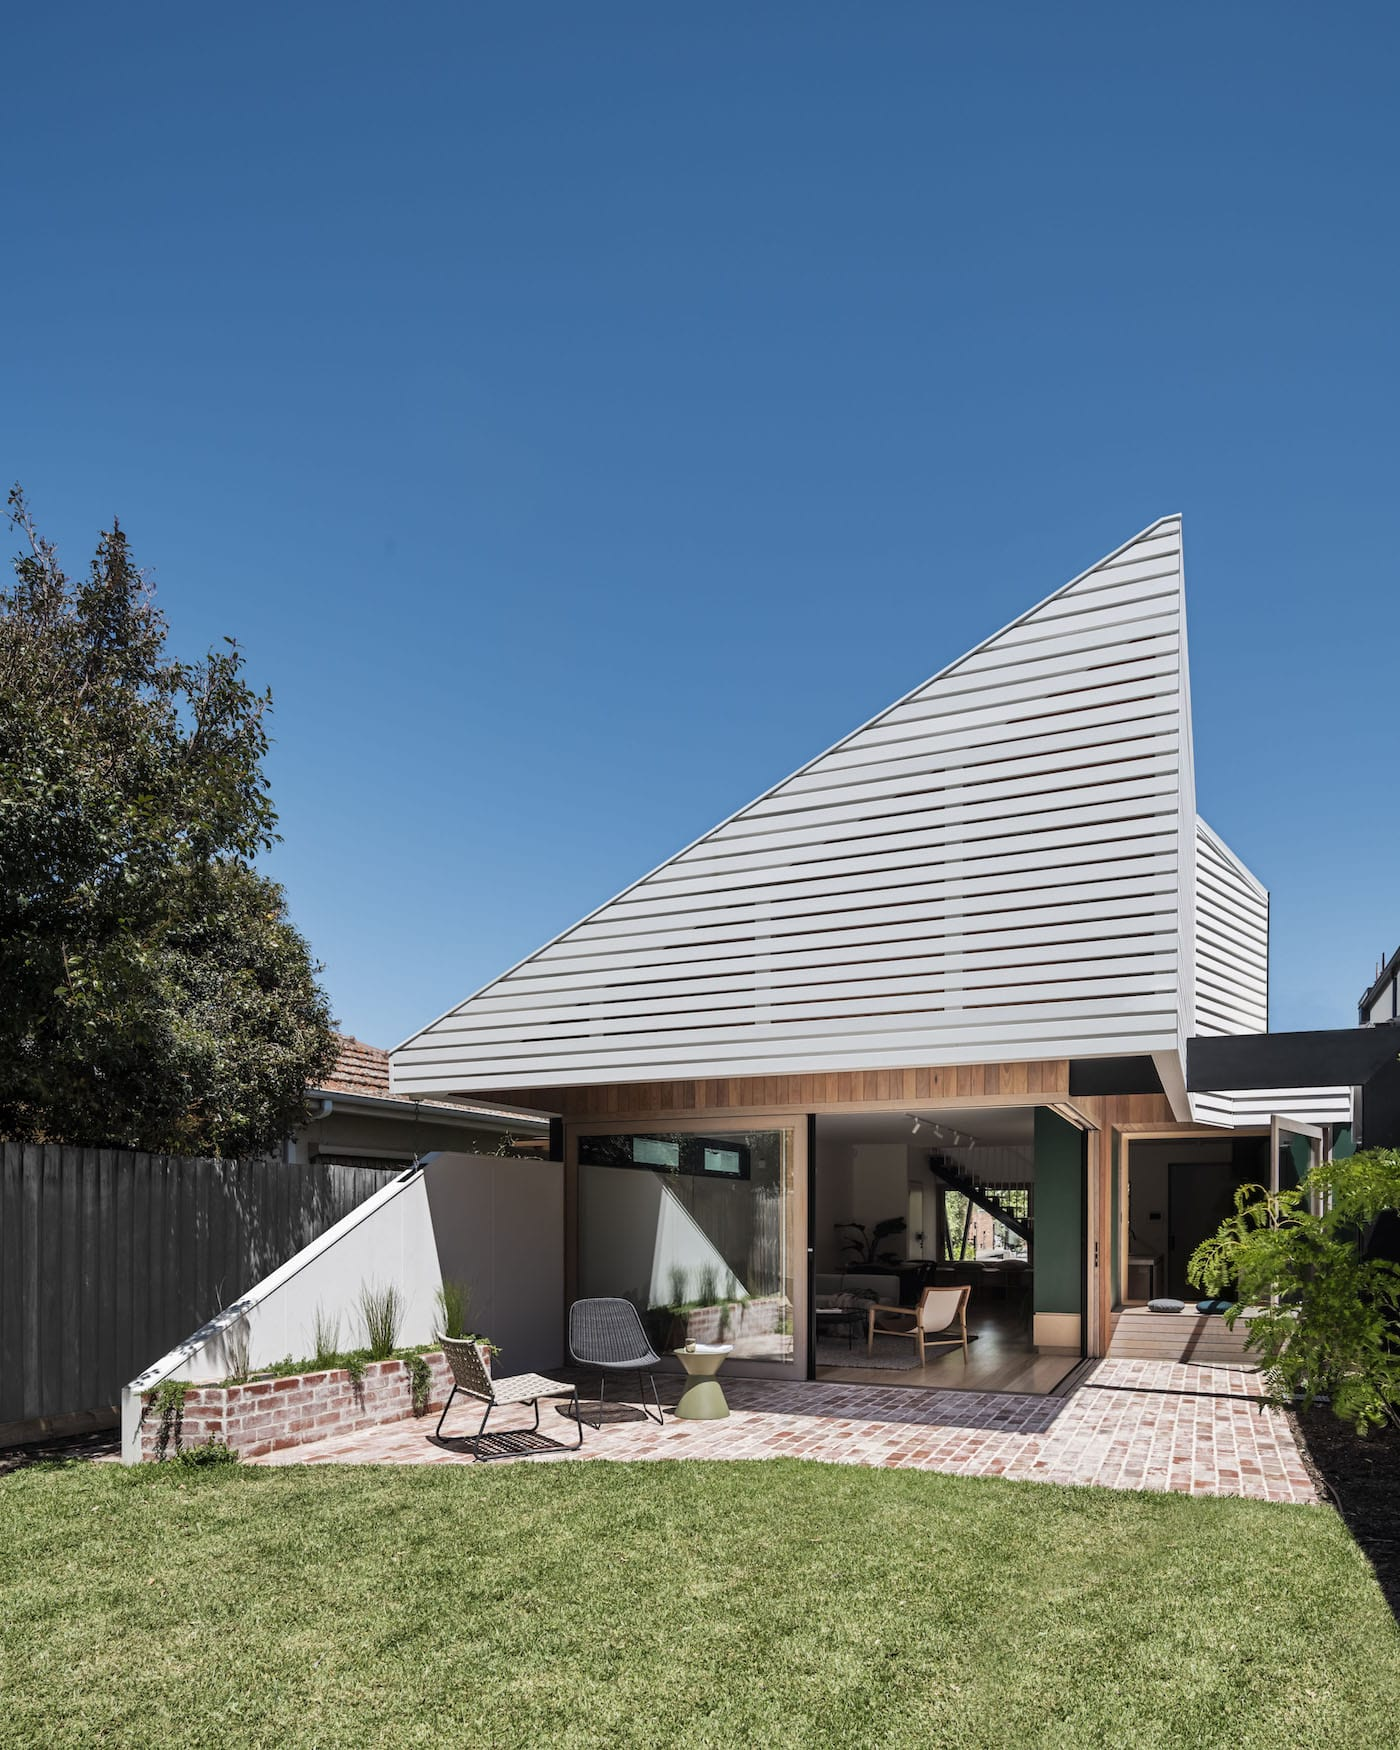 Rear view of eco friendly home with white timber slatted facade